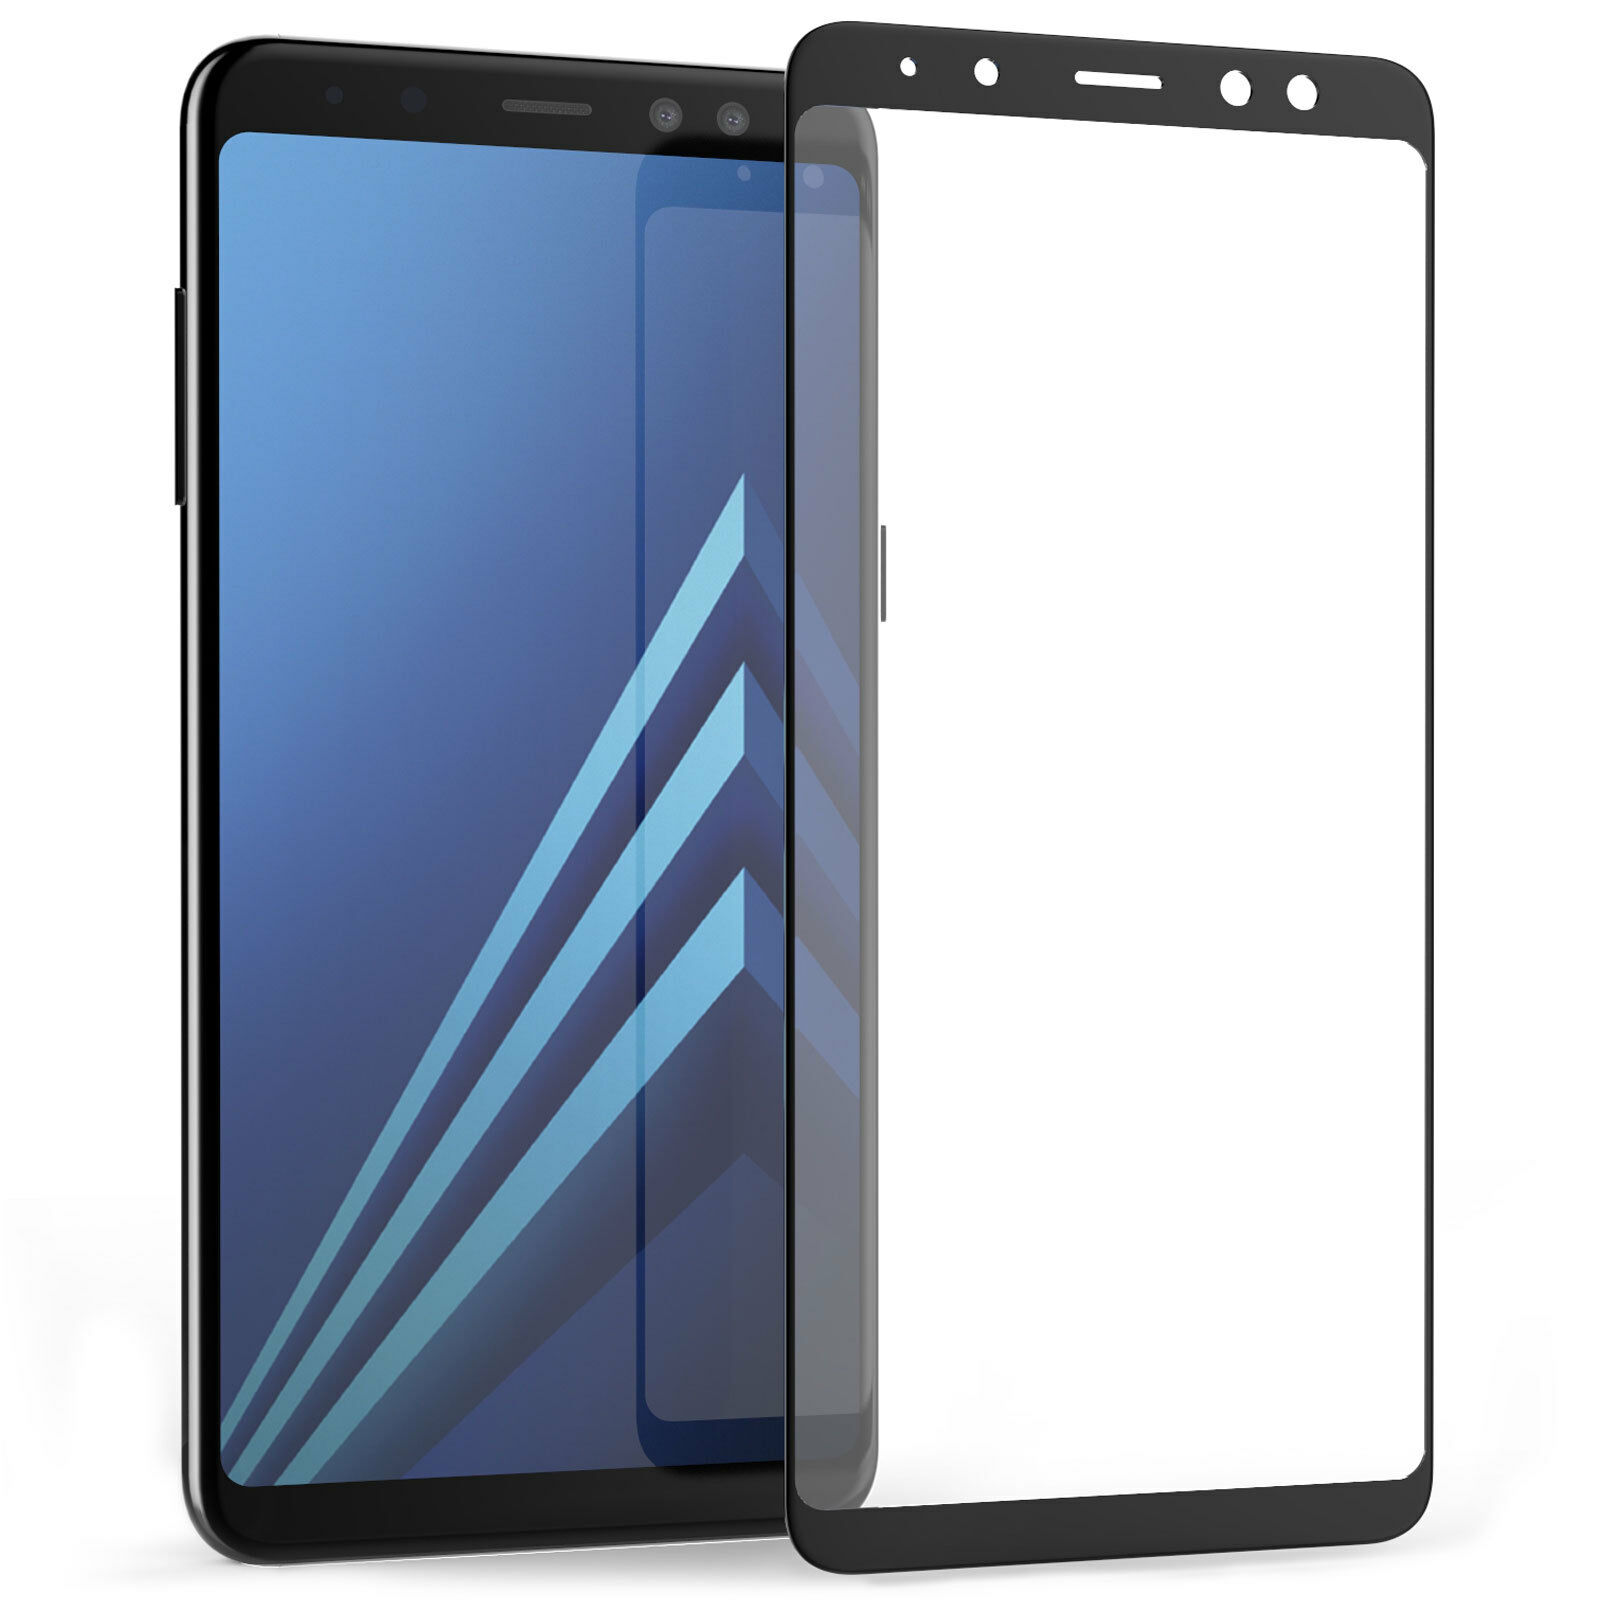 tempered glass screen protector film guard protection for samsung galaxy a8 2018. Black Bedroom Furniture Sets. Home Design Ideas